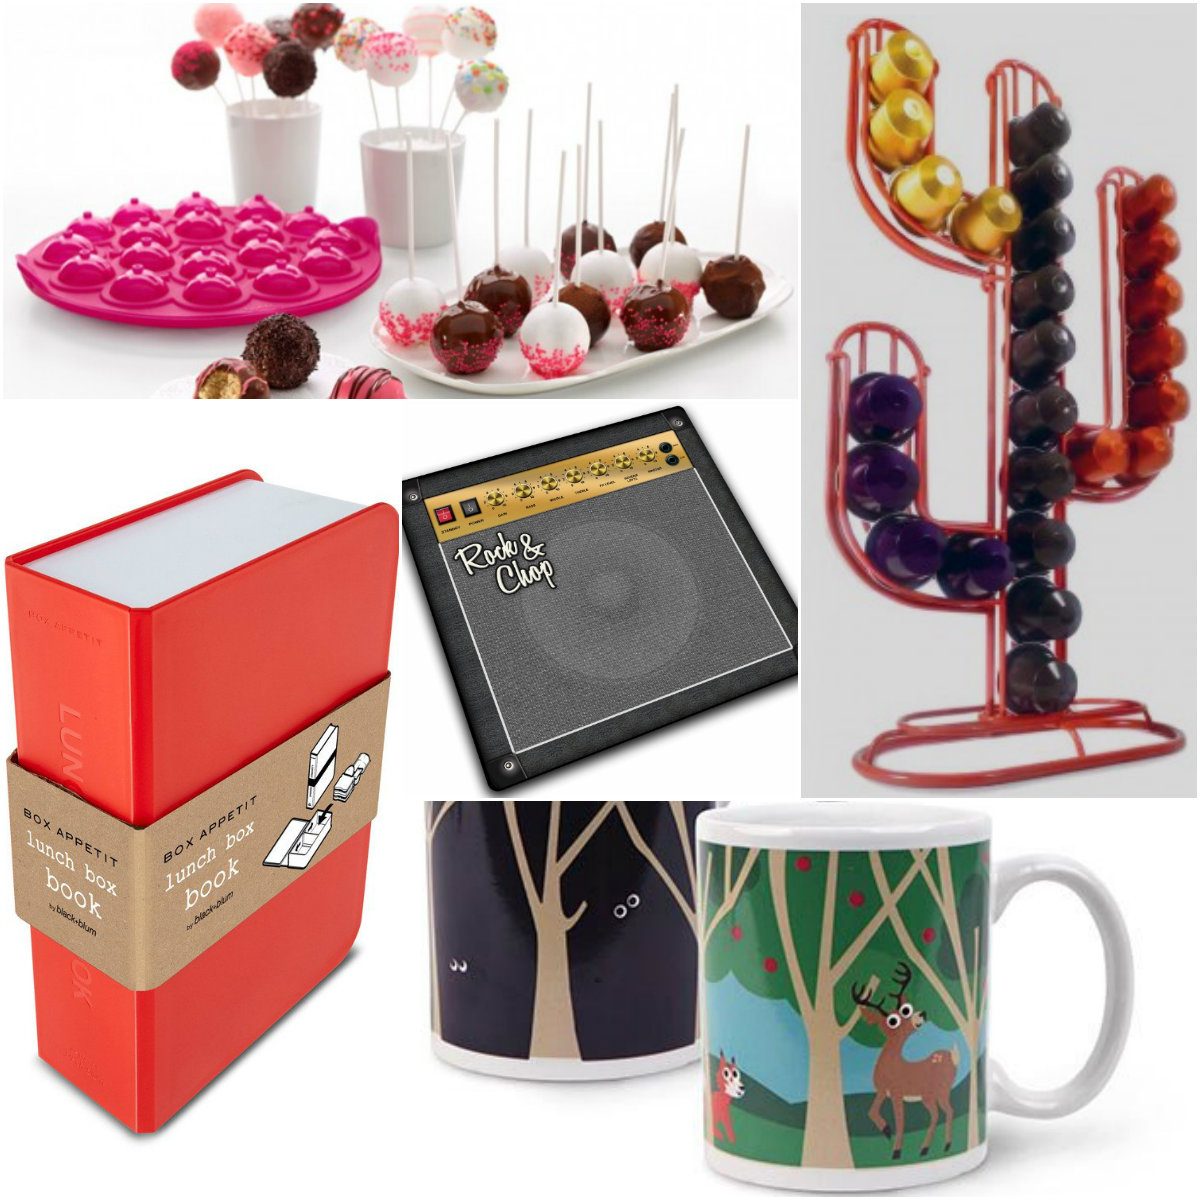 5 Christmas Gifts For Kitchen And Design Lovers Modern: gifts for kitchen lovers